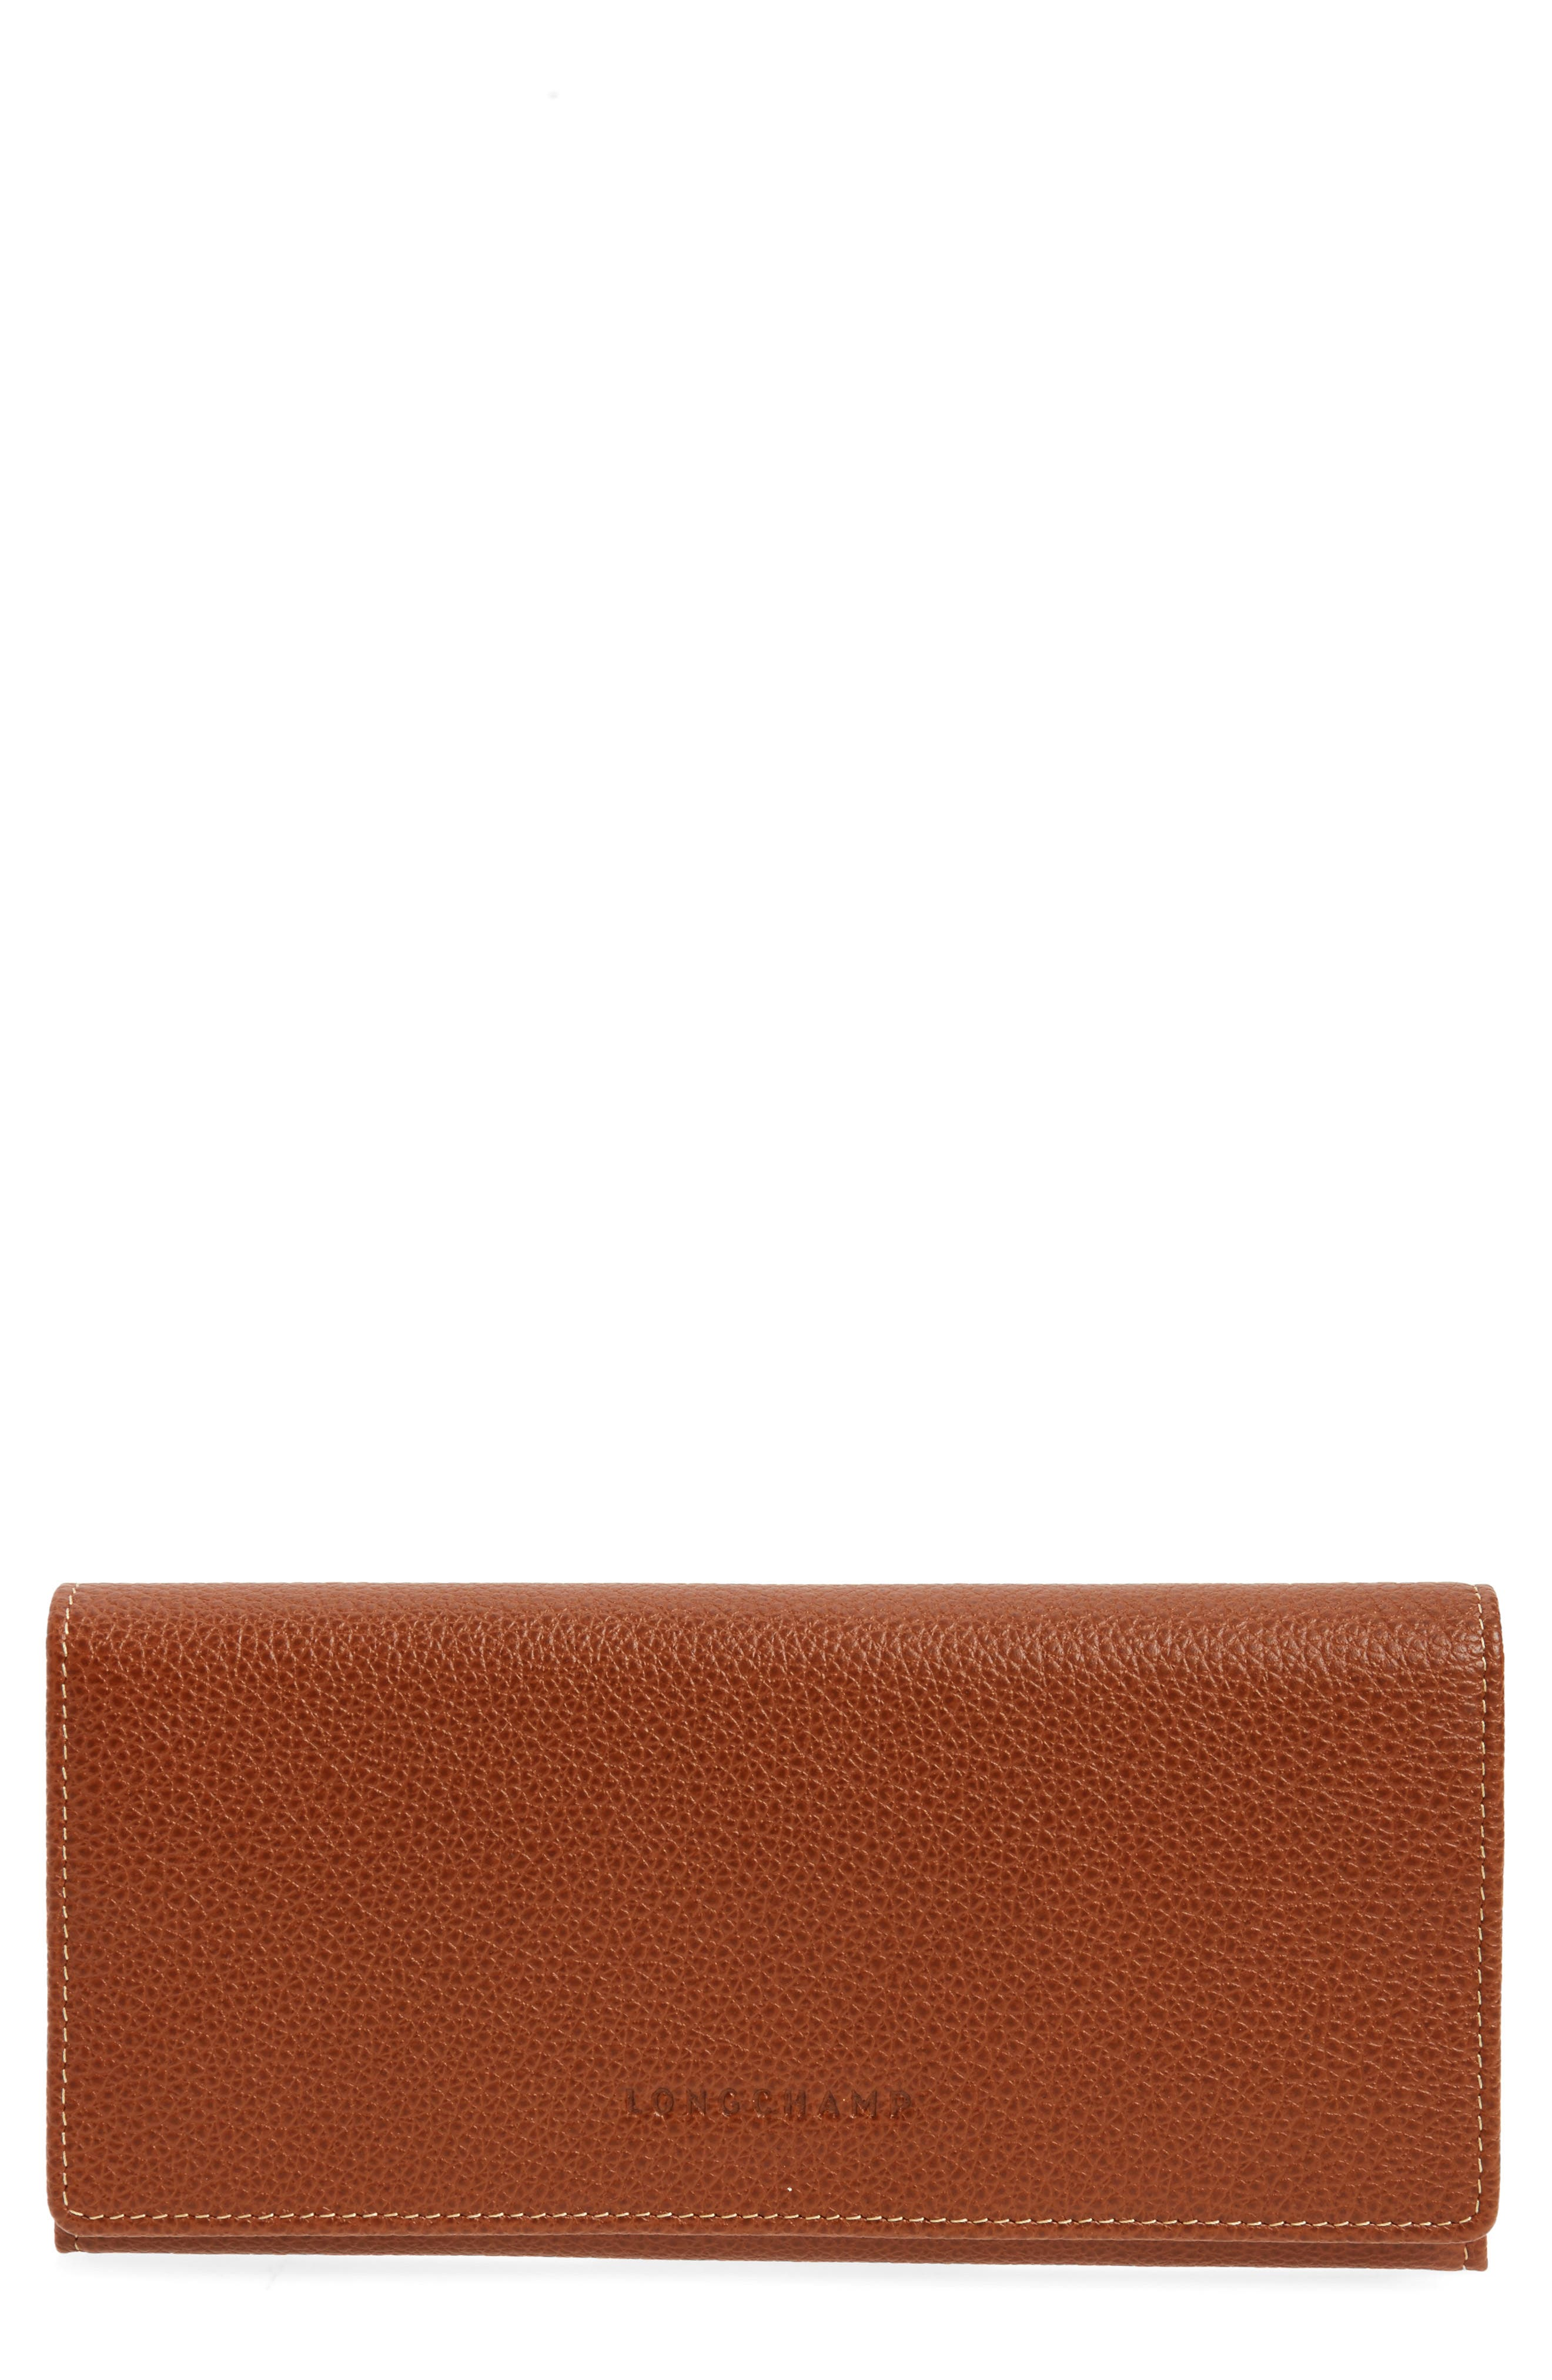 LONGCHAMP, 'Veau' Continental Wallet, Main thumbnail 1, color, COGNAC